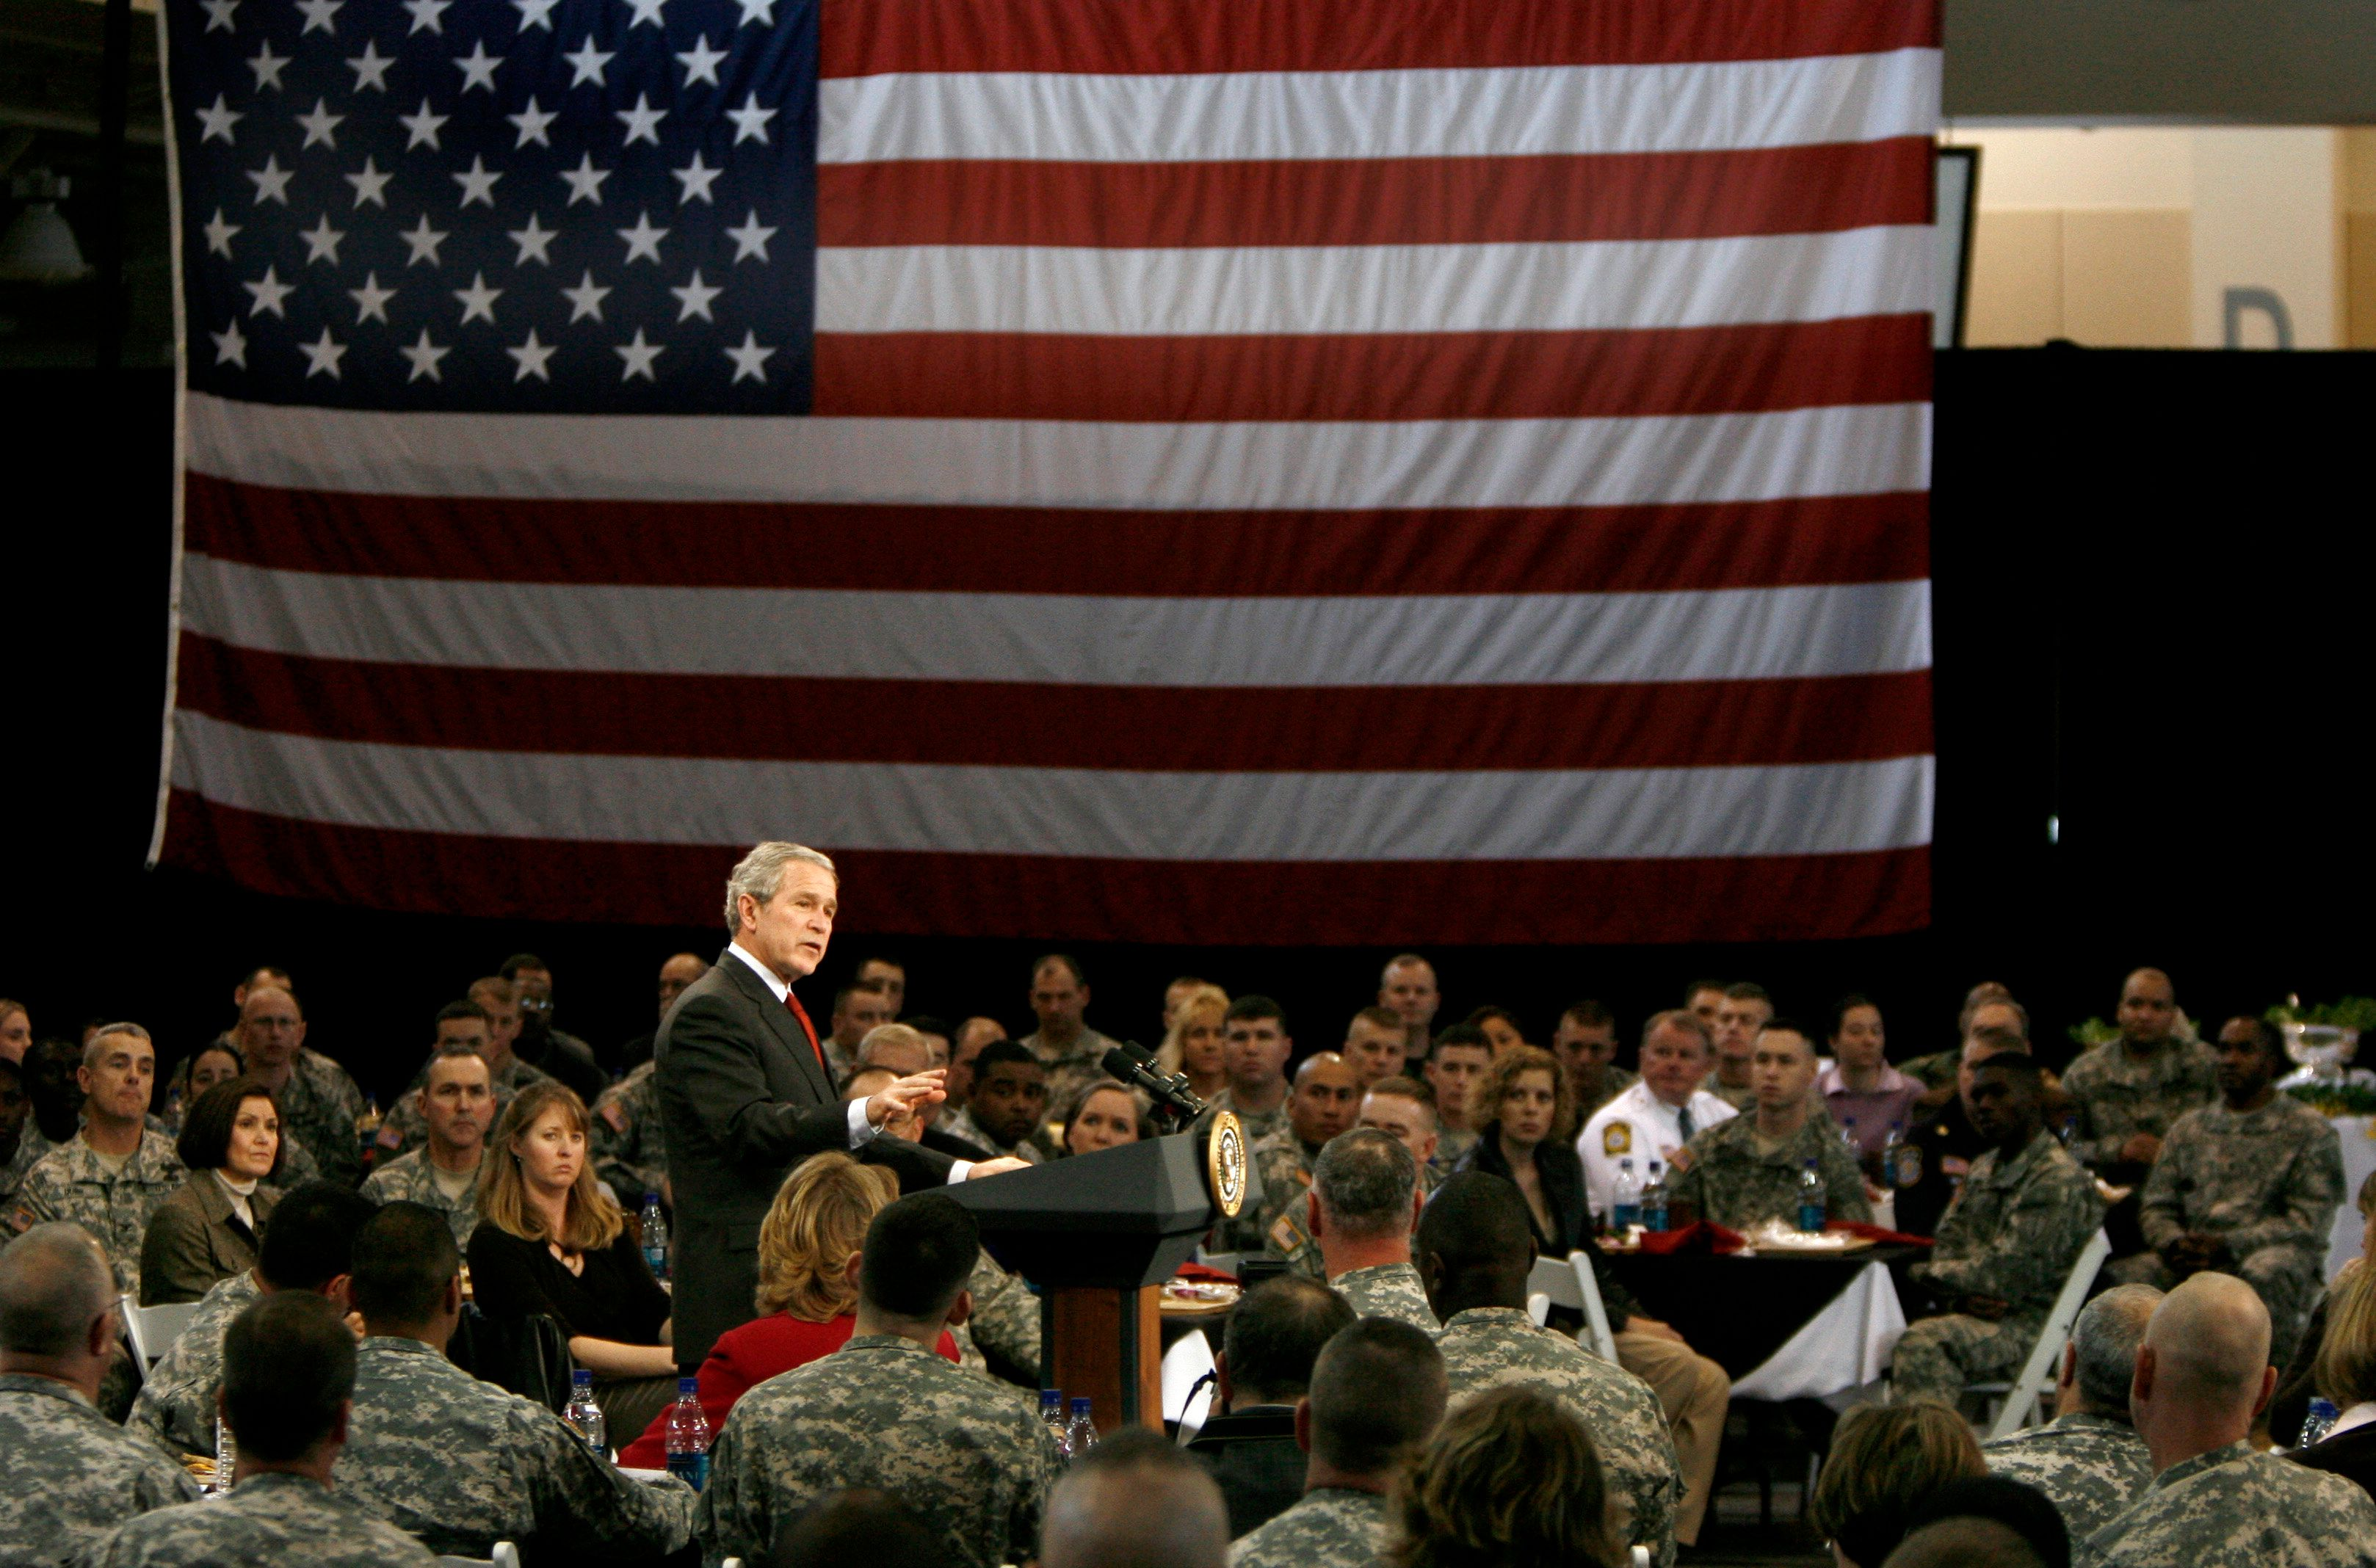 Americans Say 2-to-1 That We Never Should Have Invaded Iraq